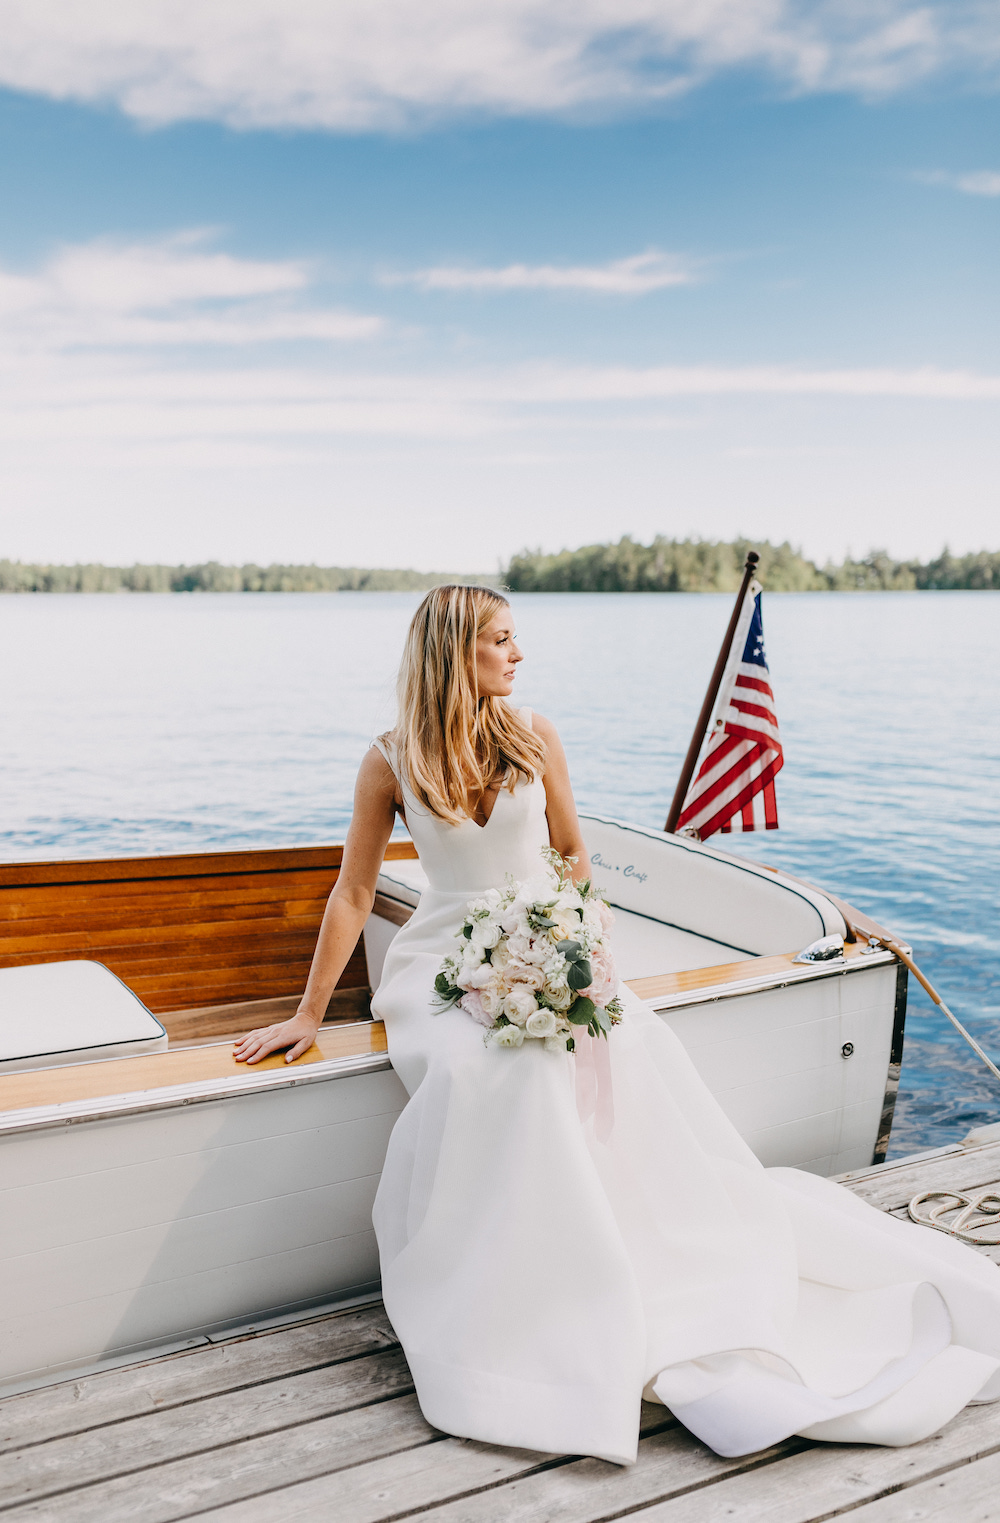 Bride holding bouquet sitting on a dock on the lake.